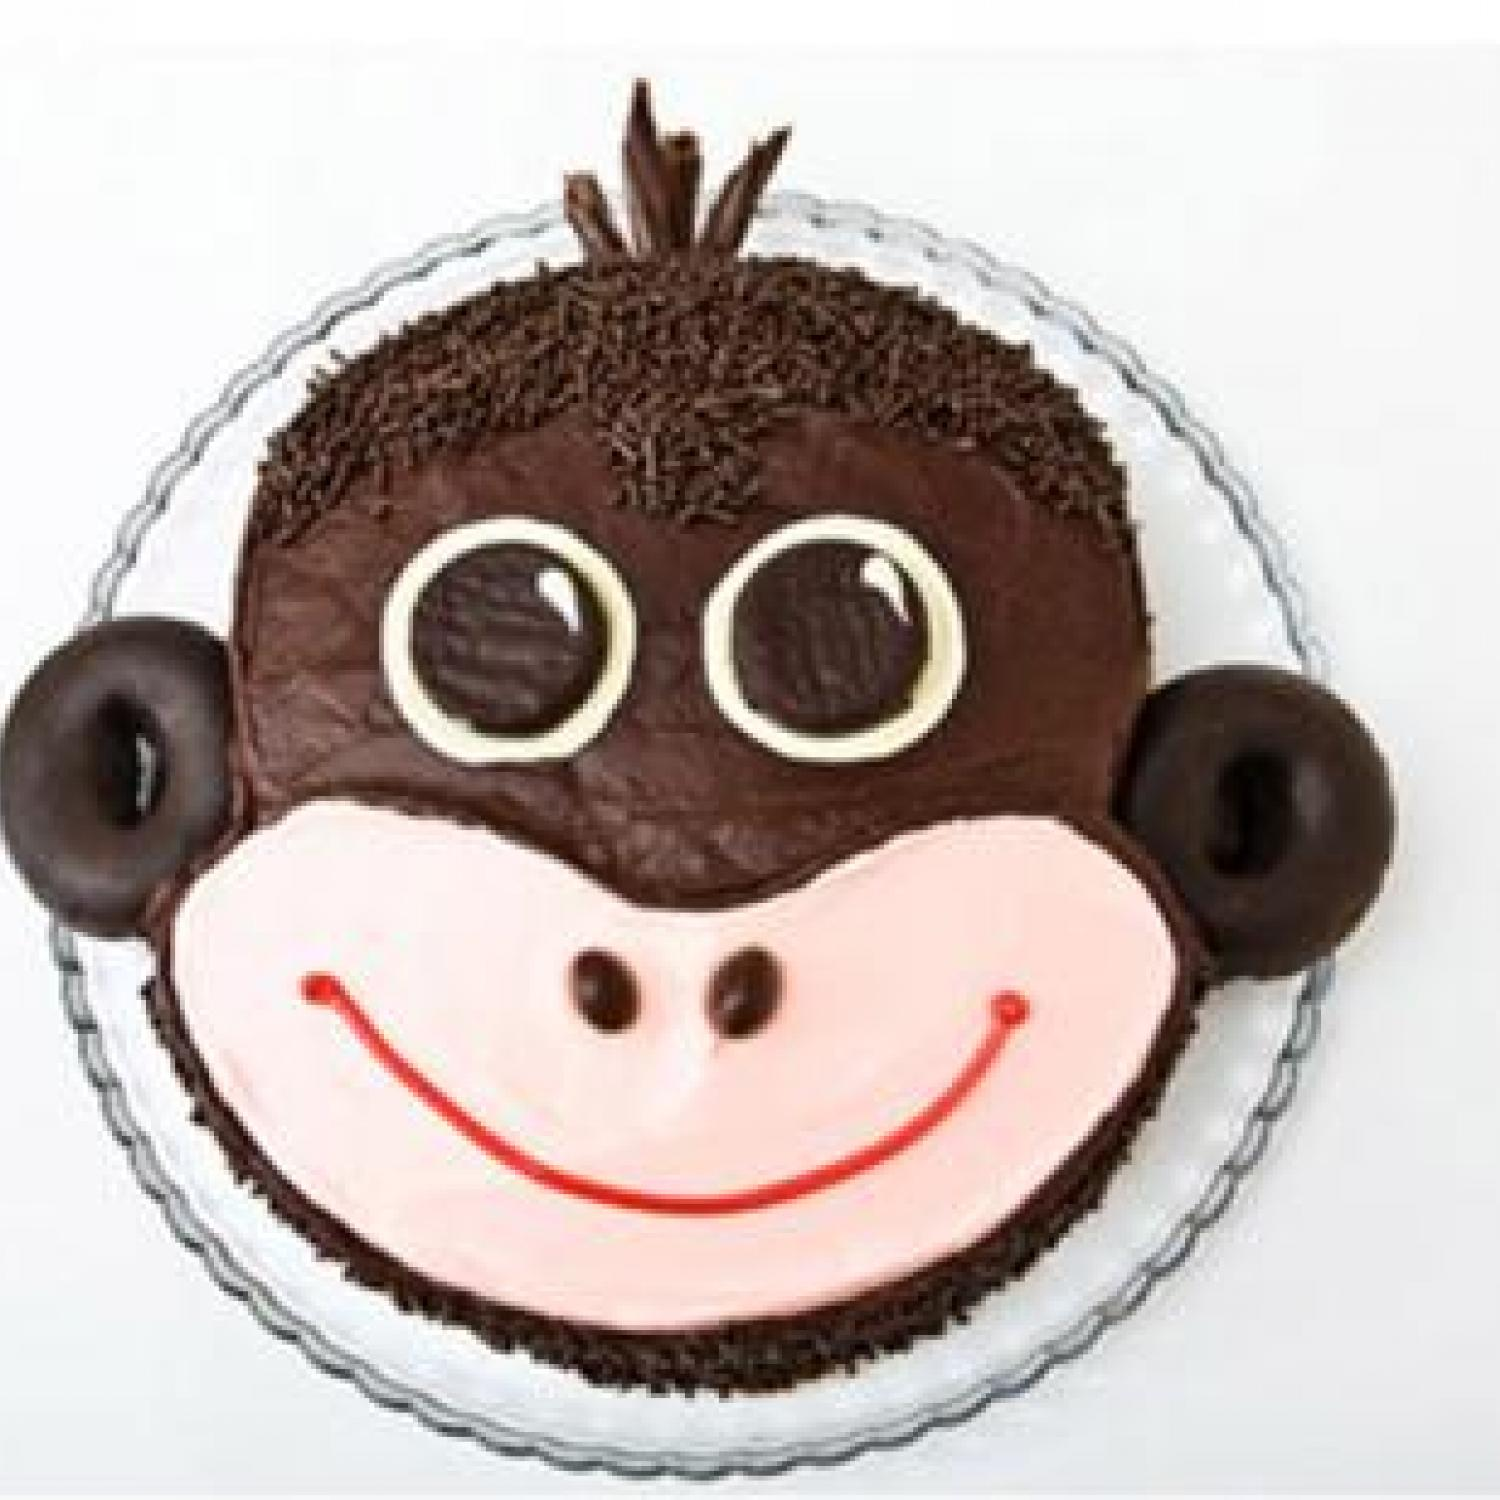 Monkey Birthday Cake Design Parenting